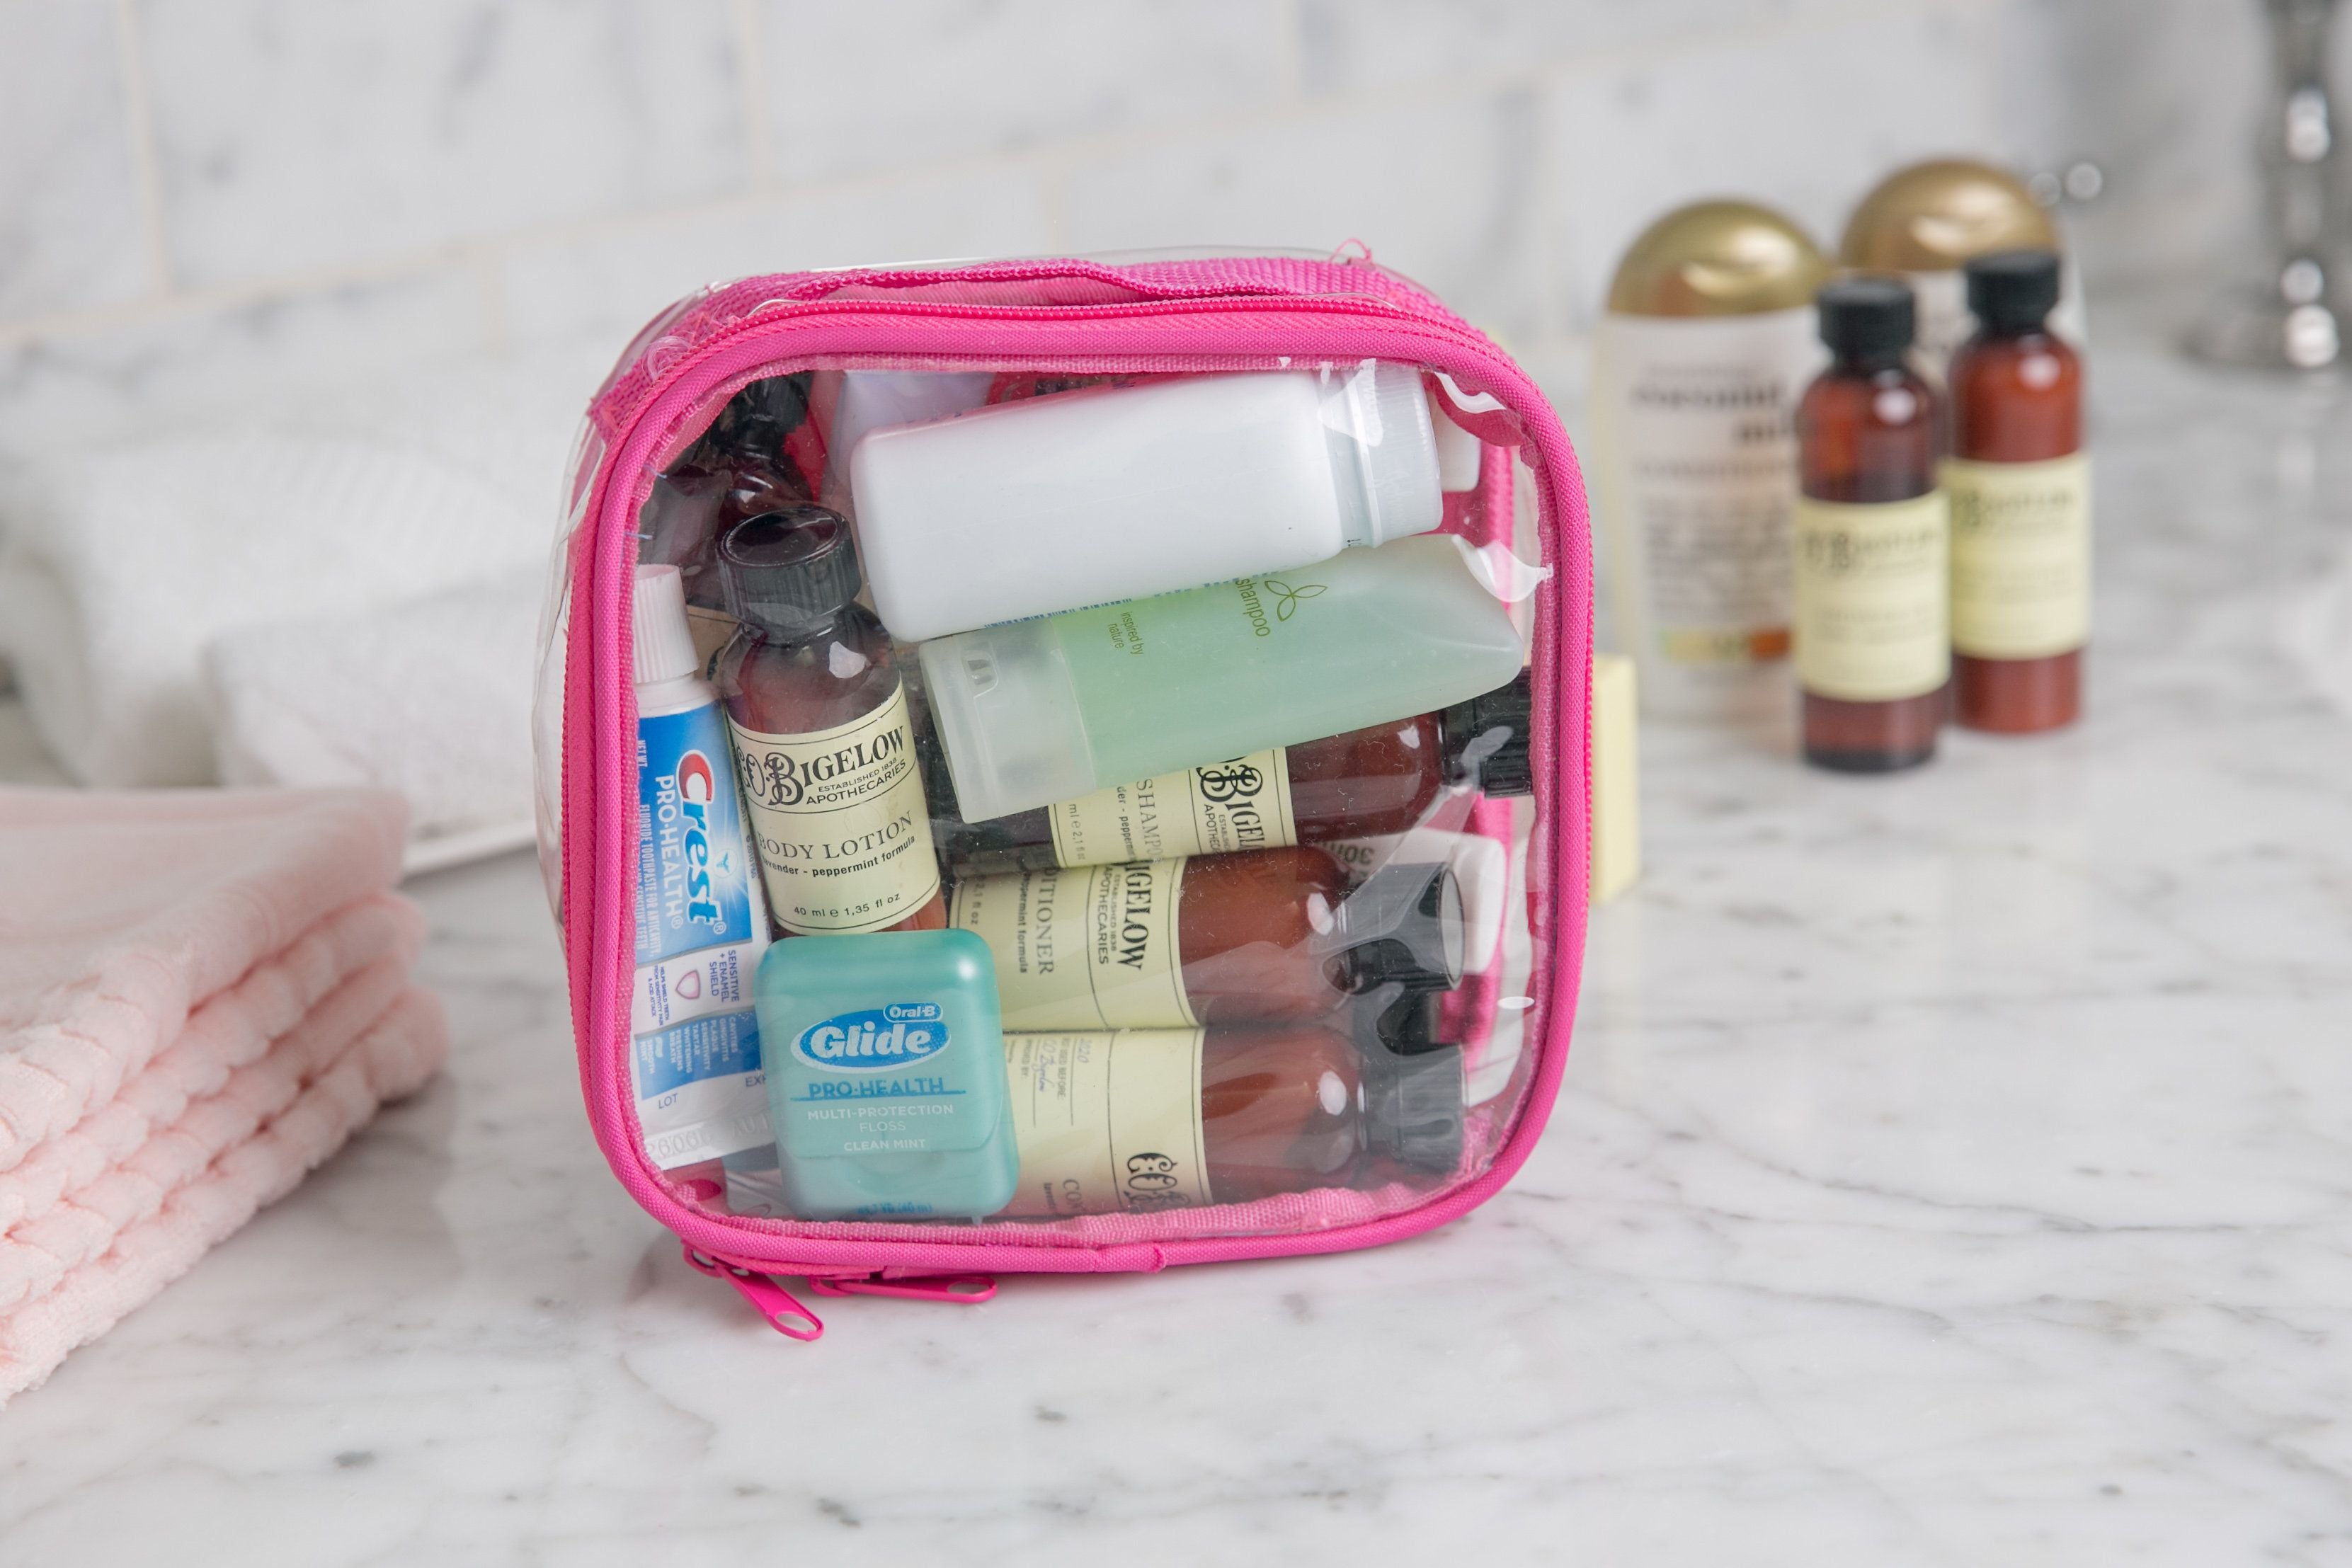 Bathroom toiletries in a pink extra small cube